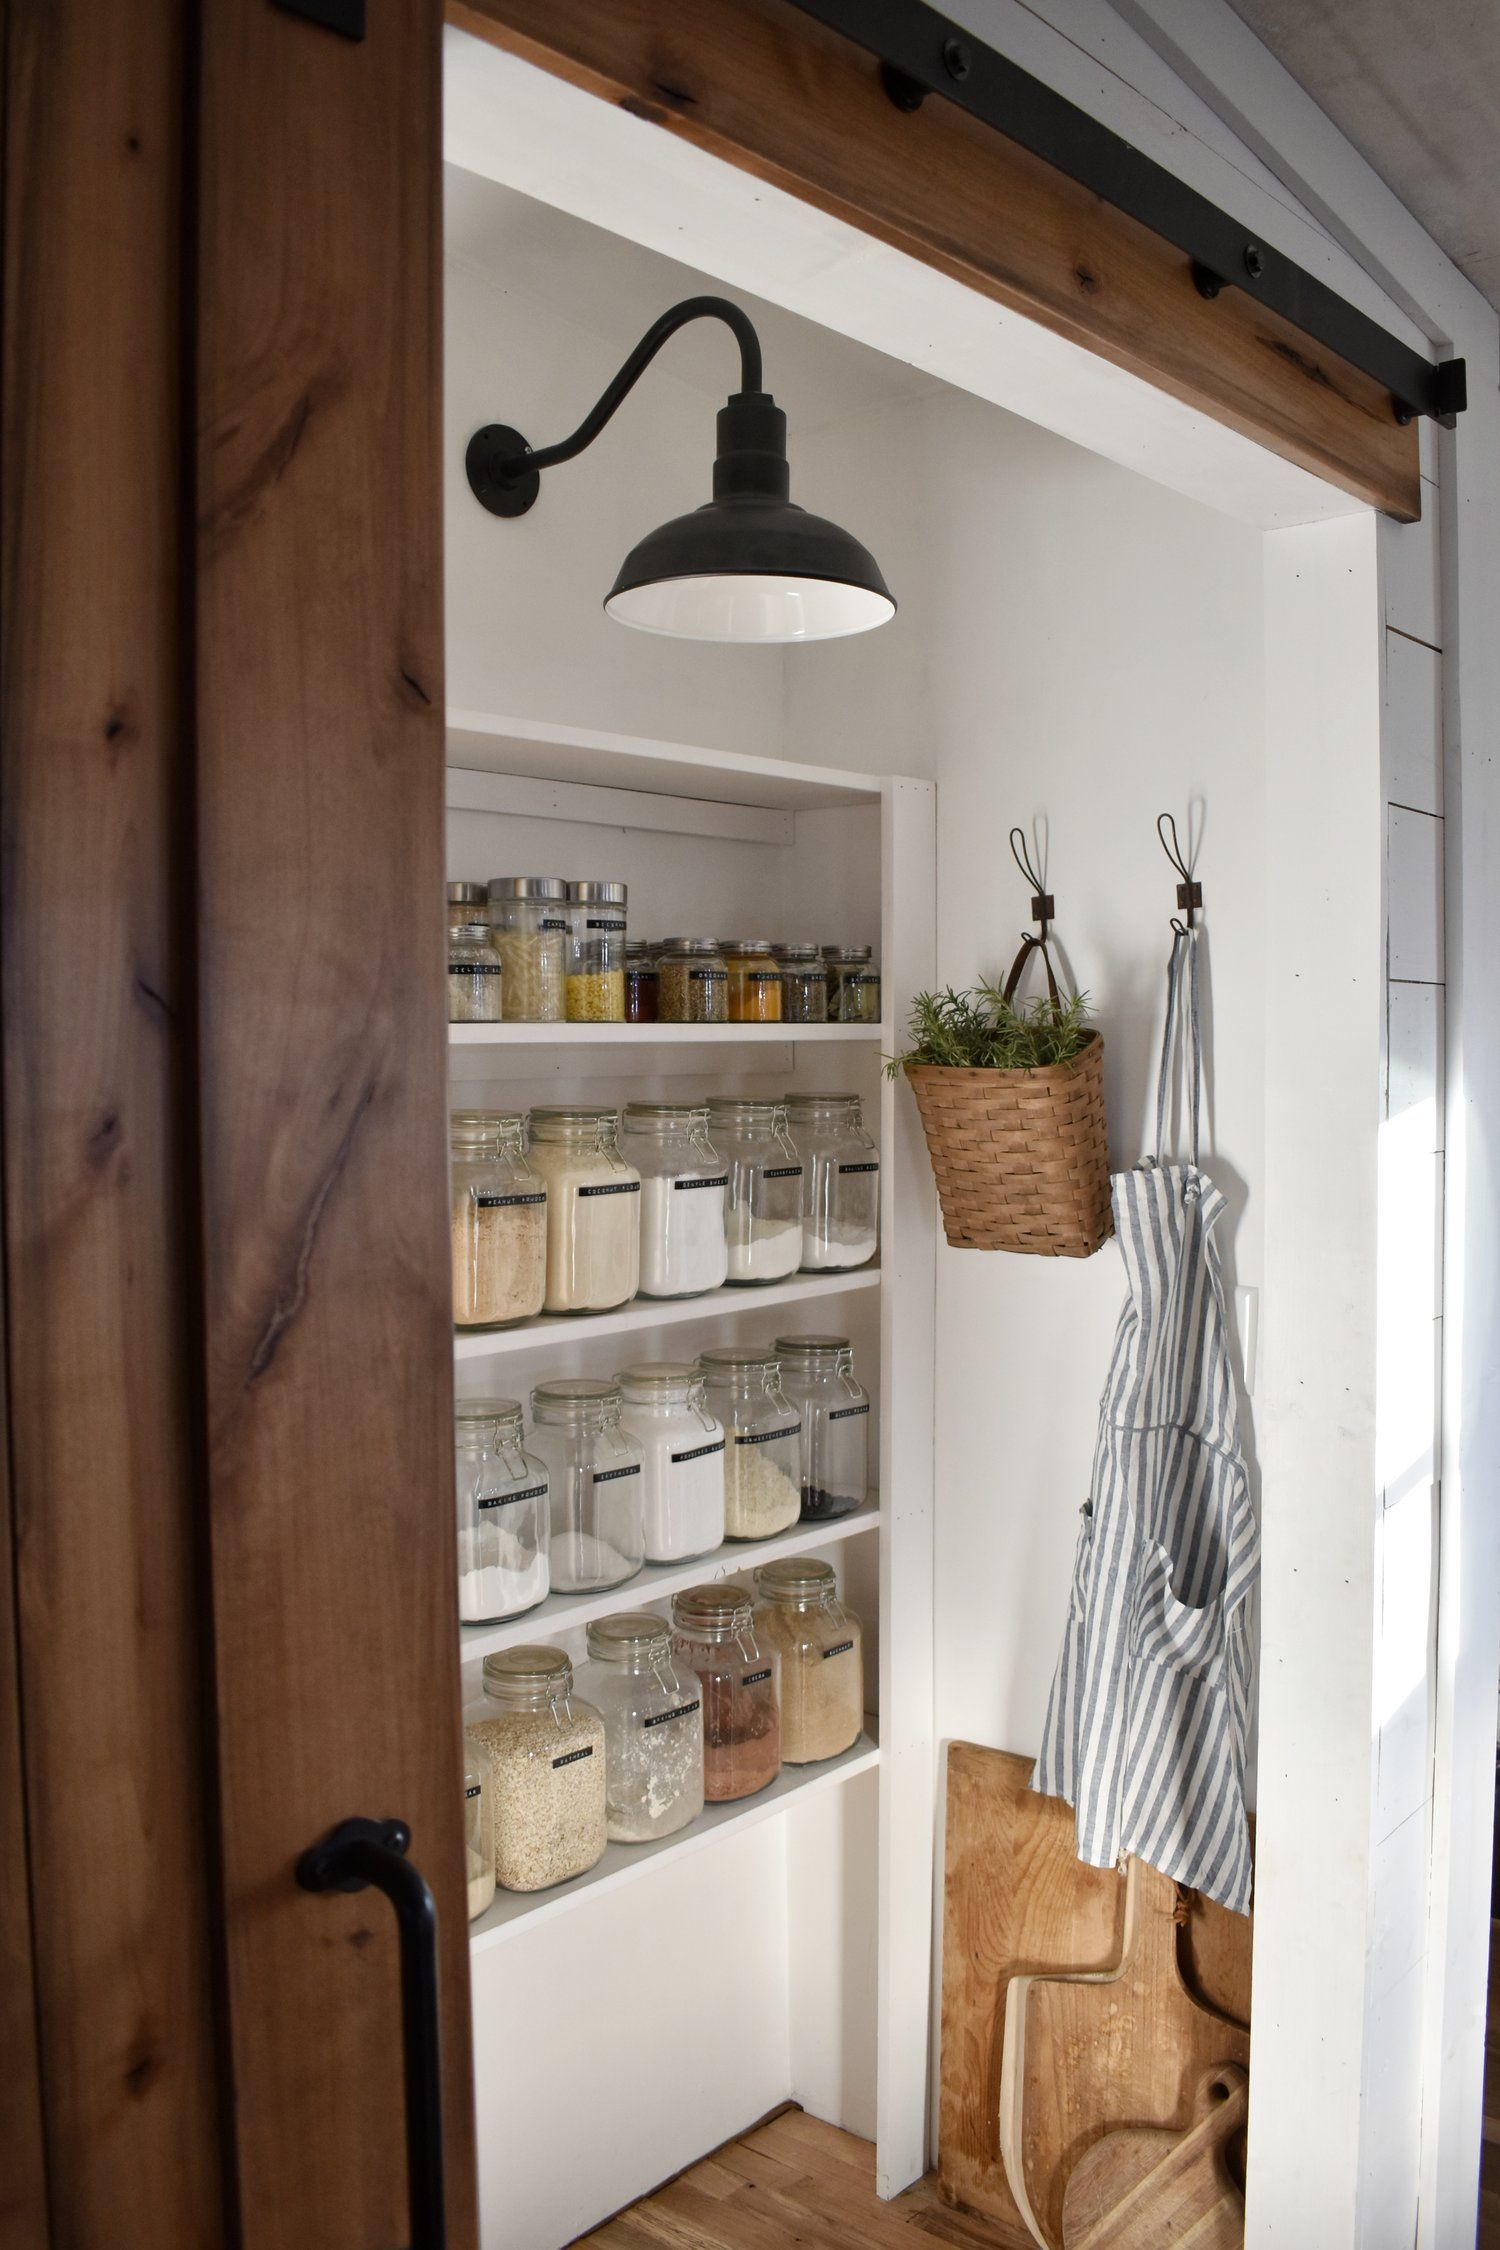 Pantry Lighting For The Kitchen Organization Ideas